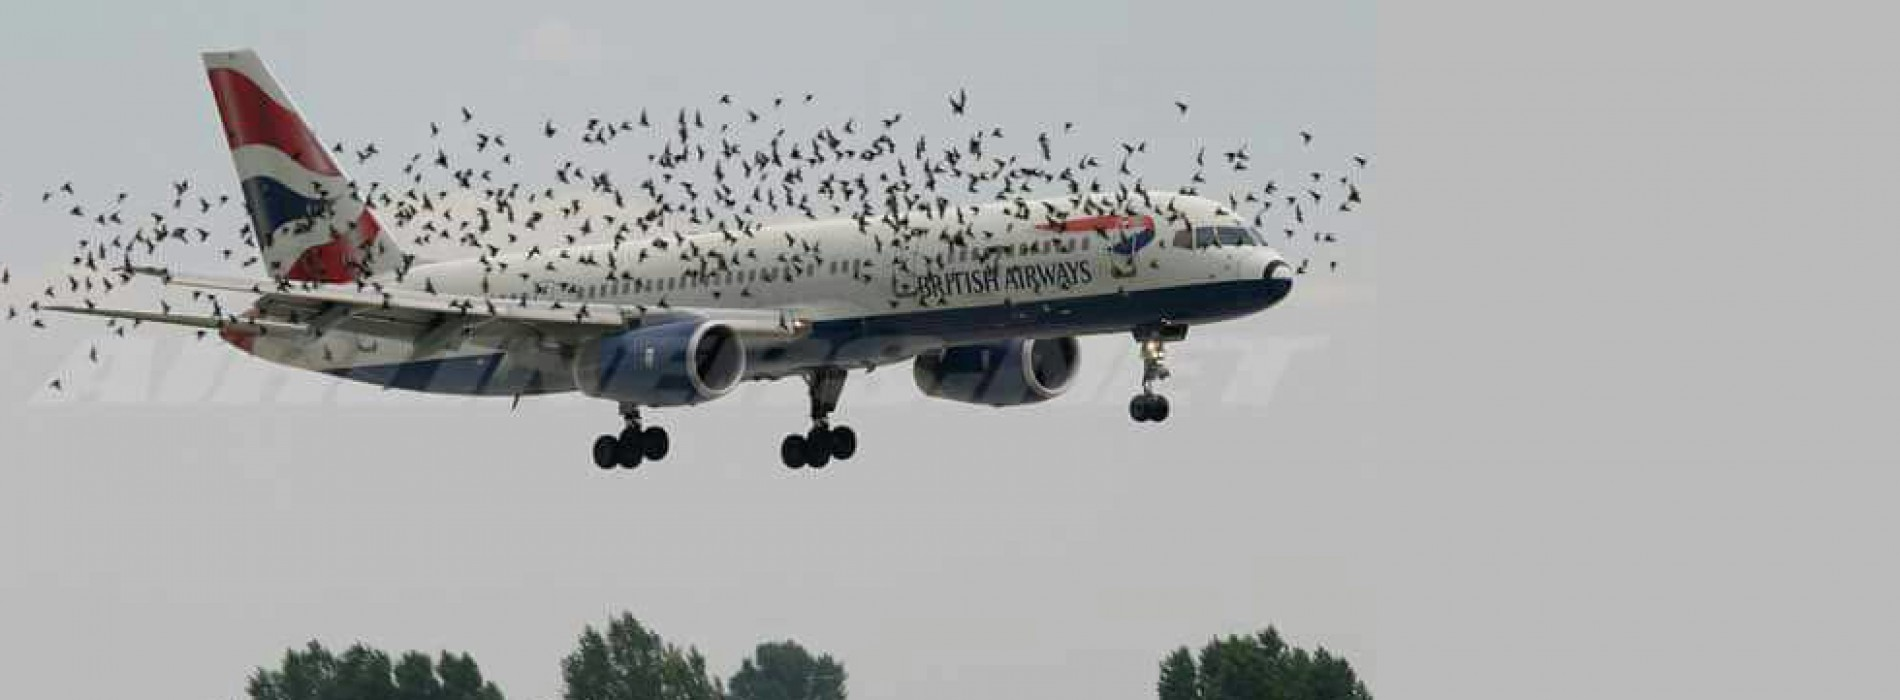 British Airways planes carrying Christians attacked by strange birds in air